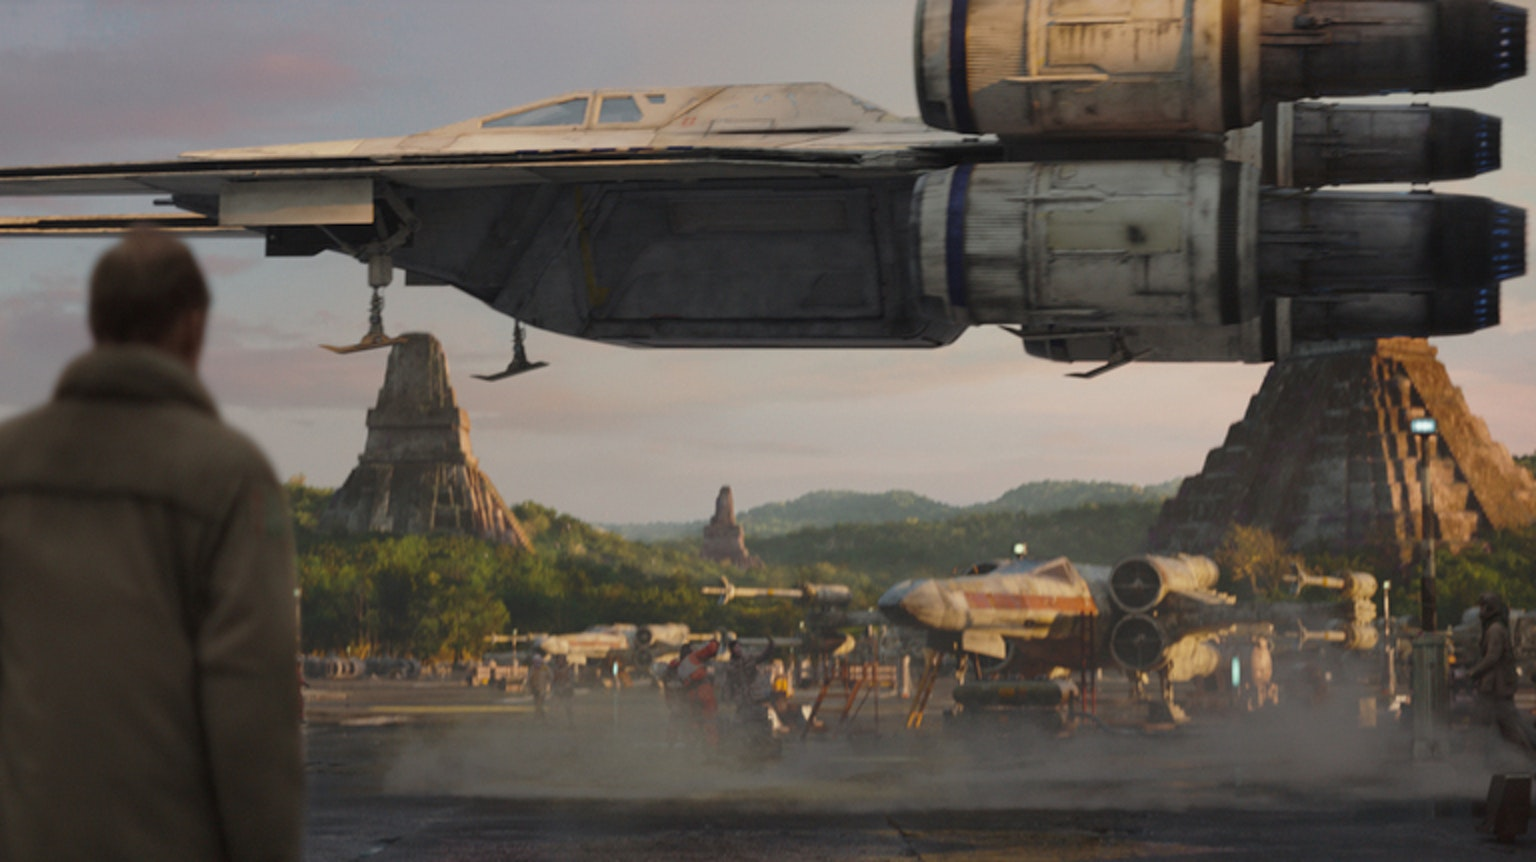 """The saga's brand new """"wing-wing vessel."""""""